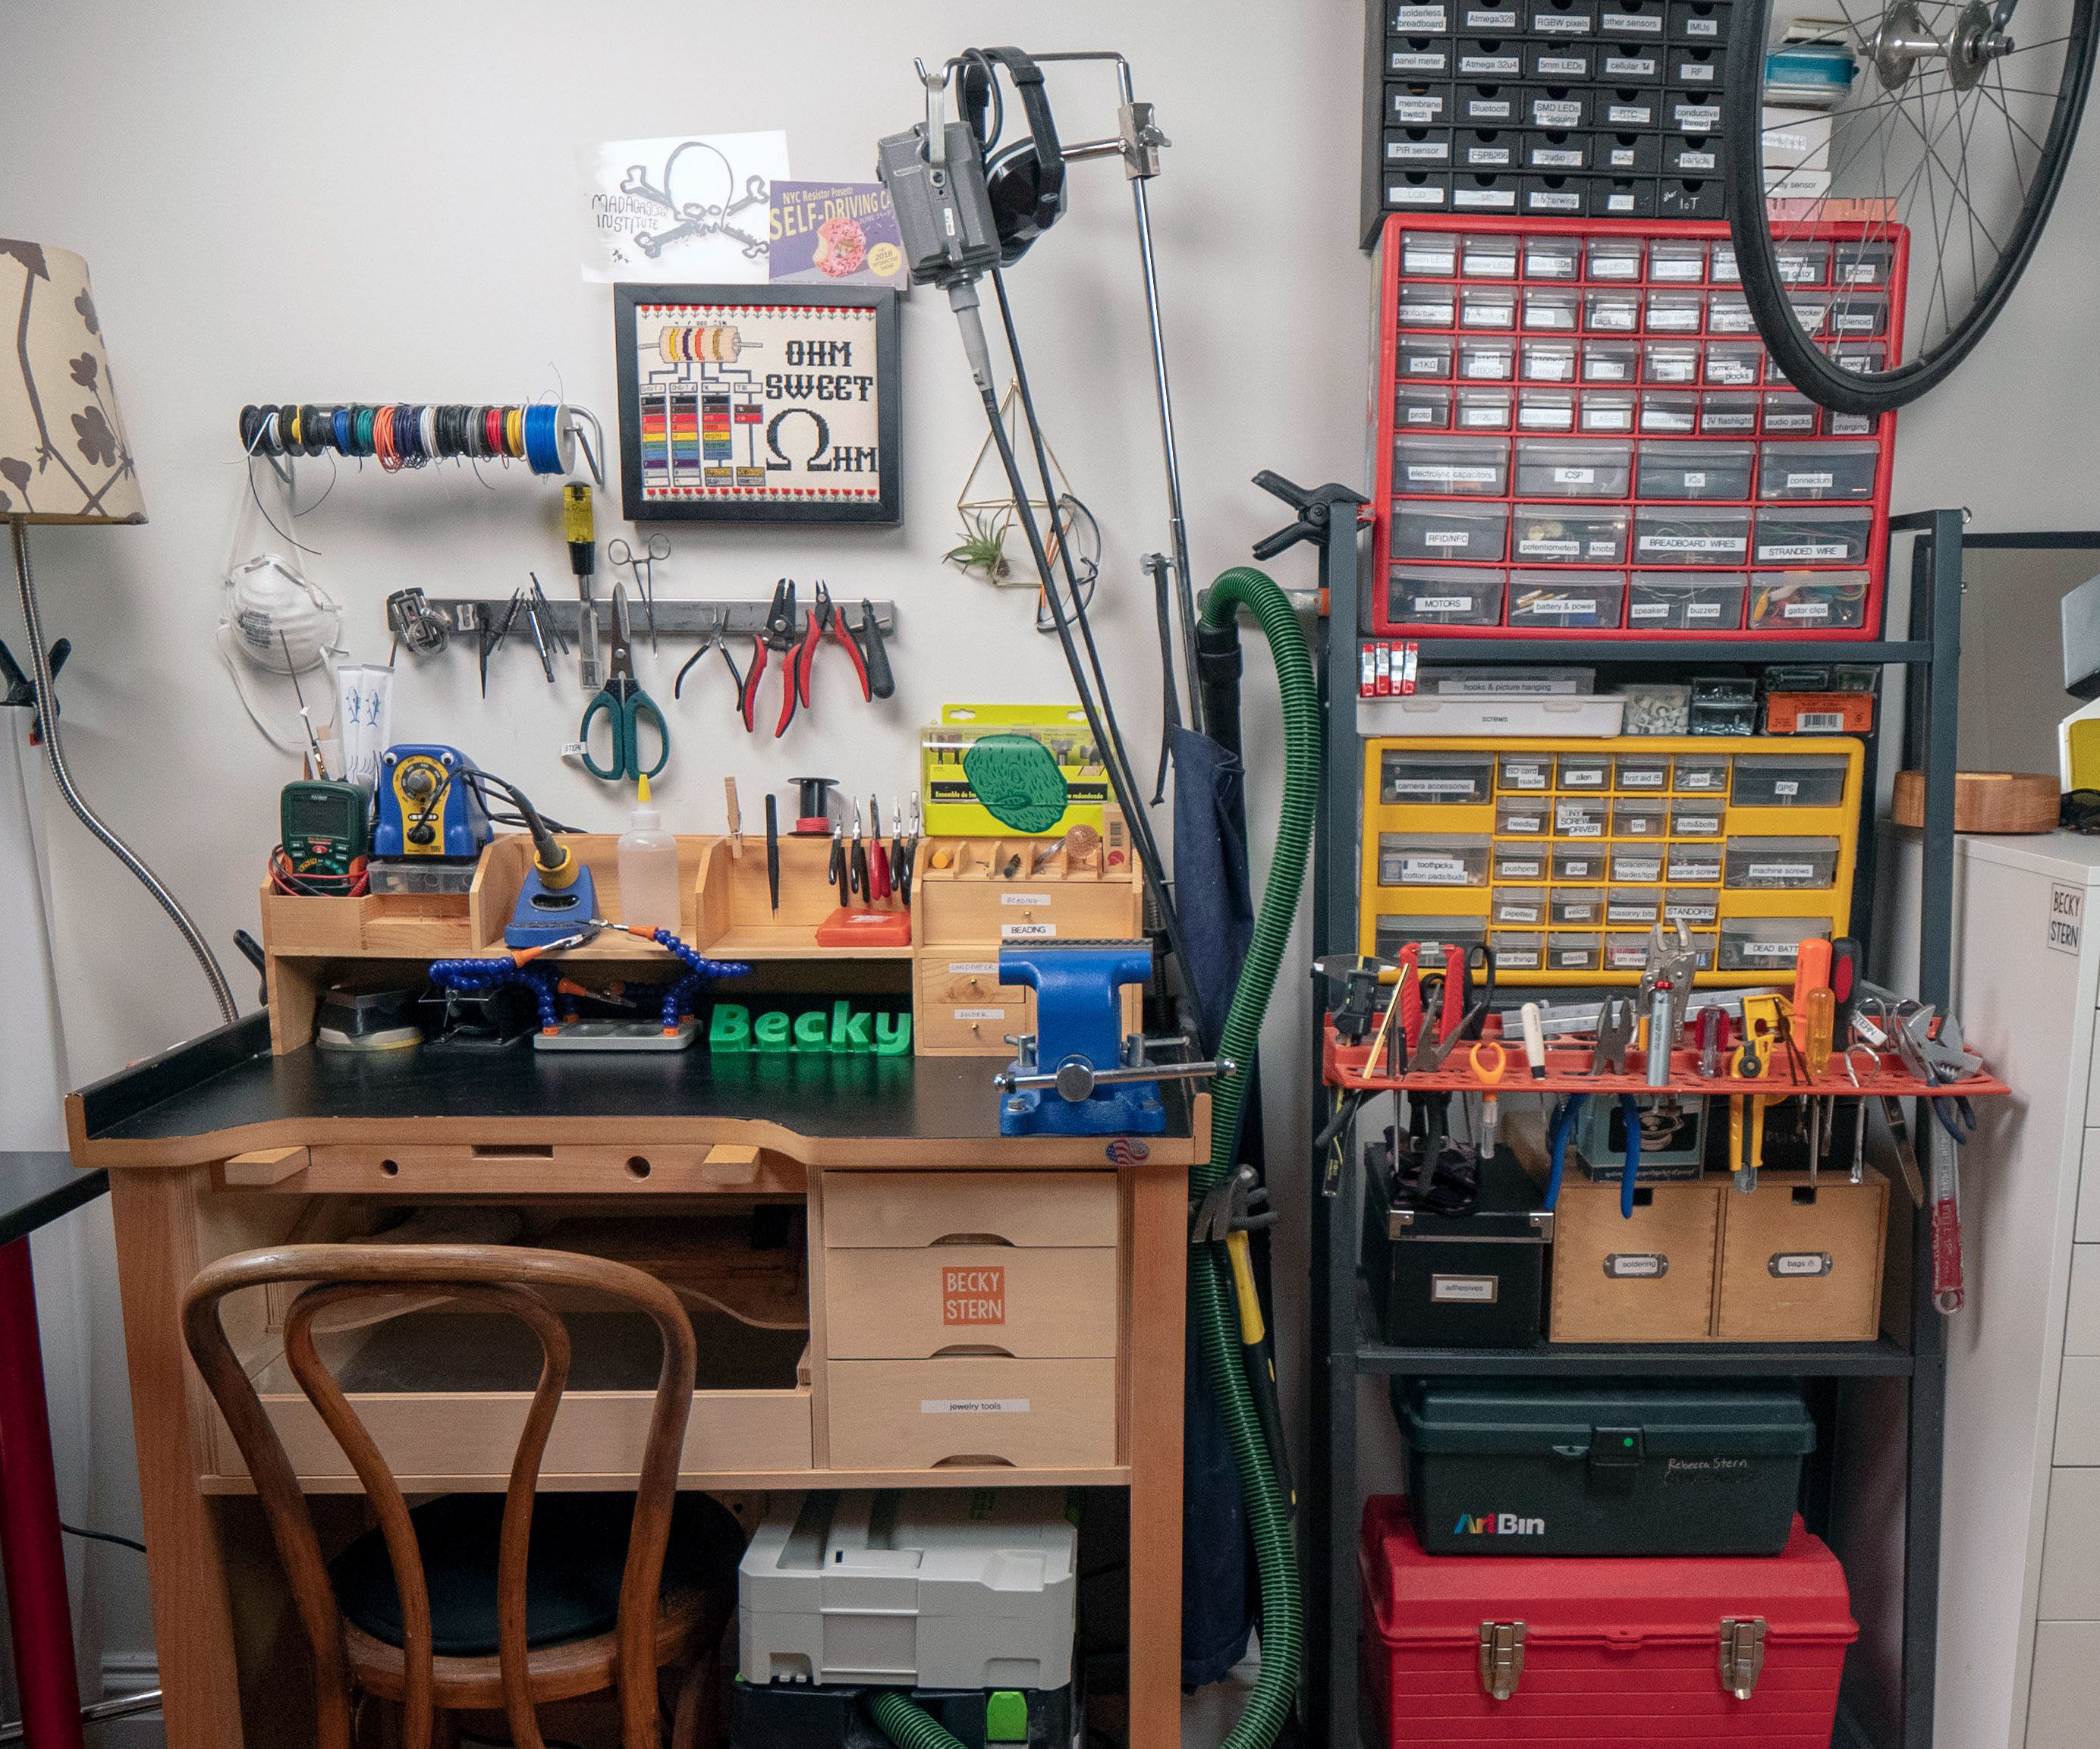 Admirable Workbench Storage Upgrade 3 Steps With Pictures Andrewgaddart Wooden Chair Designs For Living Room Andrewgaddartcom